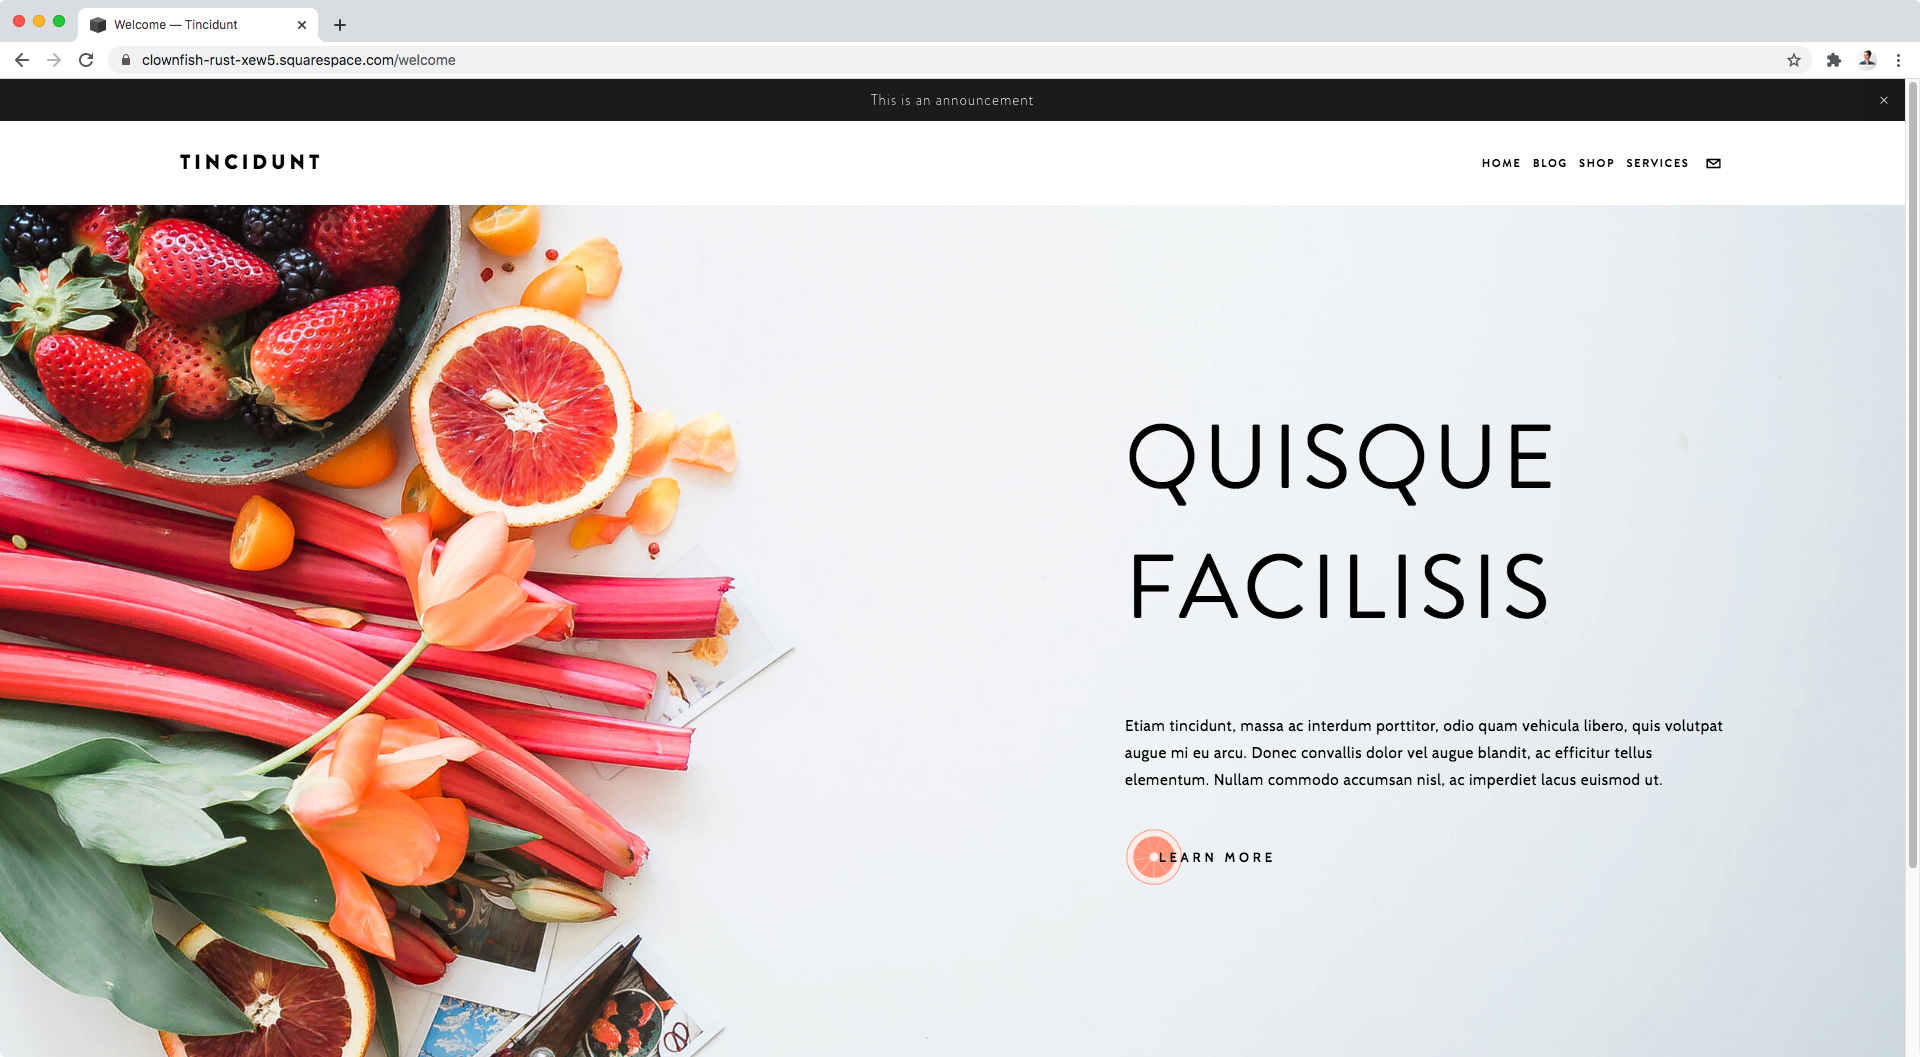 Adding an image to buttons in Squarespace 7.0 and 7.1